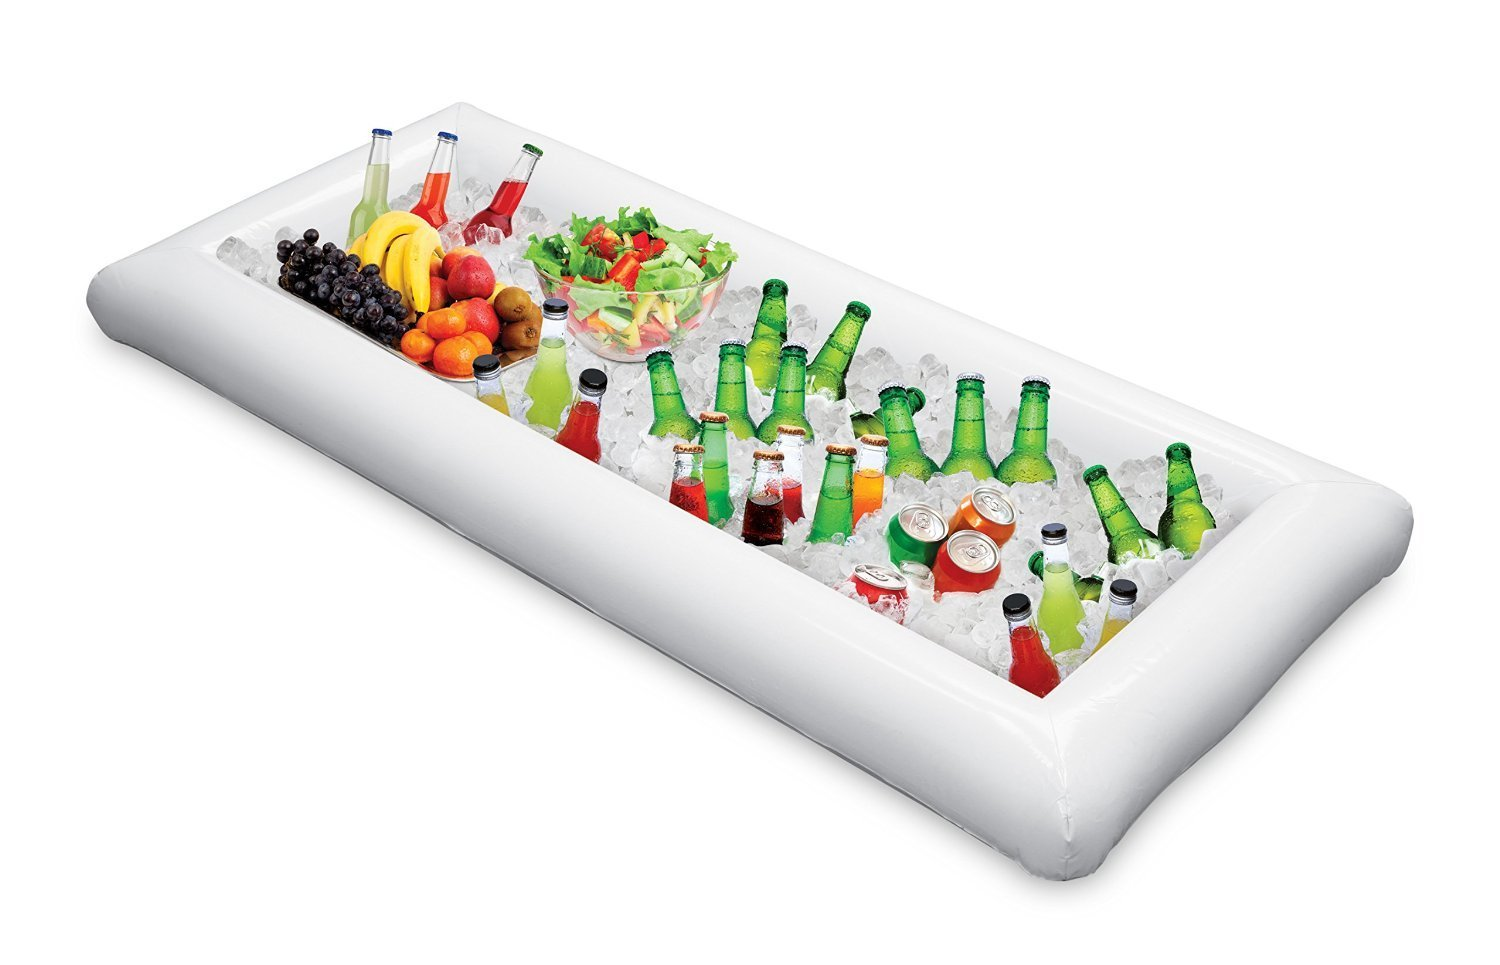 Inflatable Serving Bar Buffet Salad Food & Drink Tray,Portable Salad Bar for Football Parties, Pool Parties, BBQ,Tailgates and More by Amian Shop